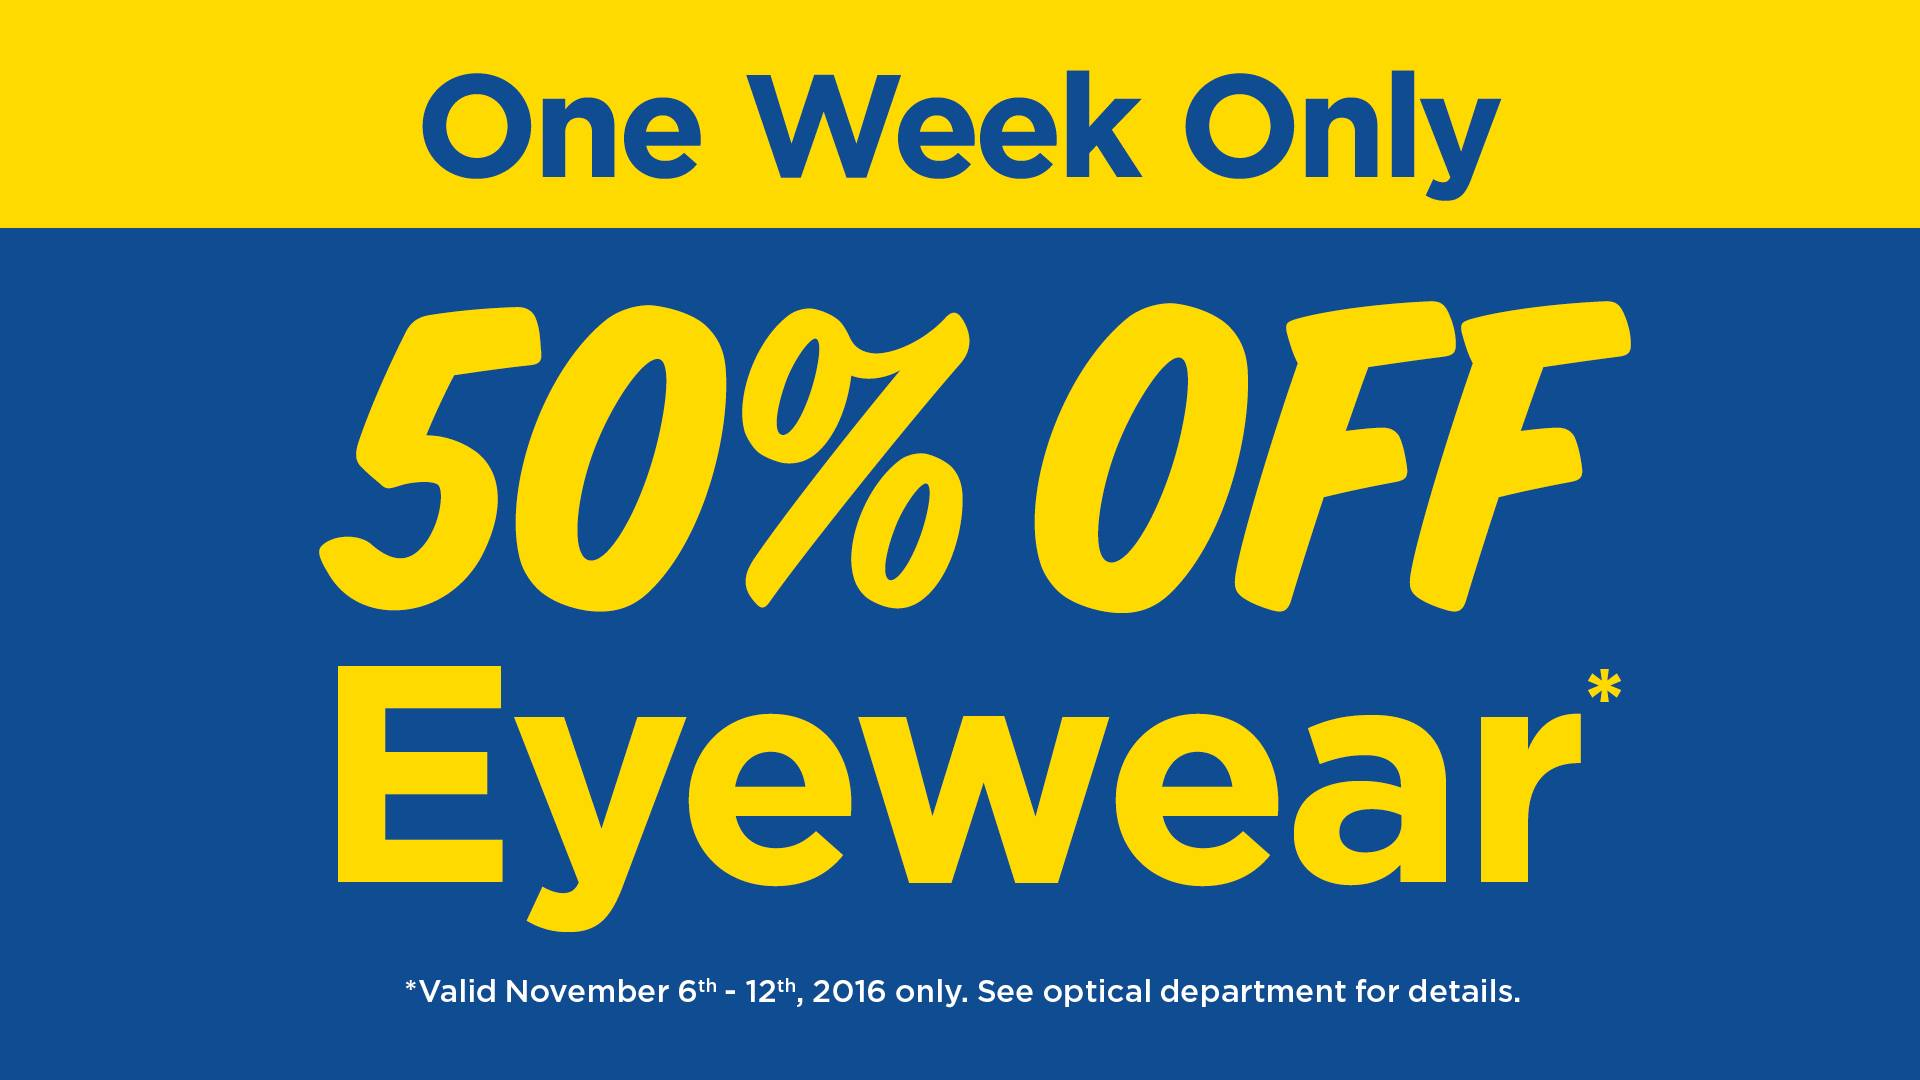 Real Canadian Superstore Optical Department Offers: Save 50% off Eyeglasses, Sunglasses & Accessories + 15% Off Contact Lenses!